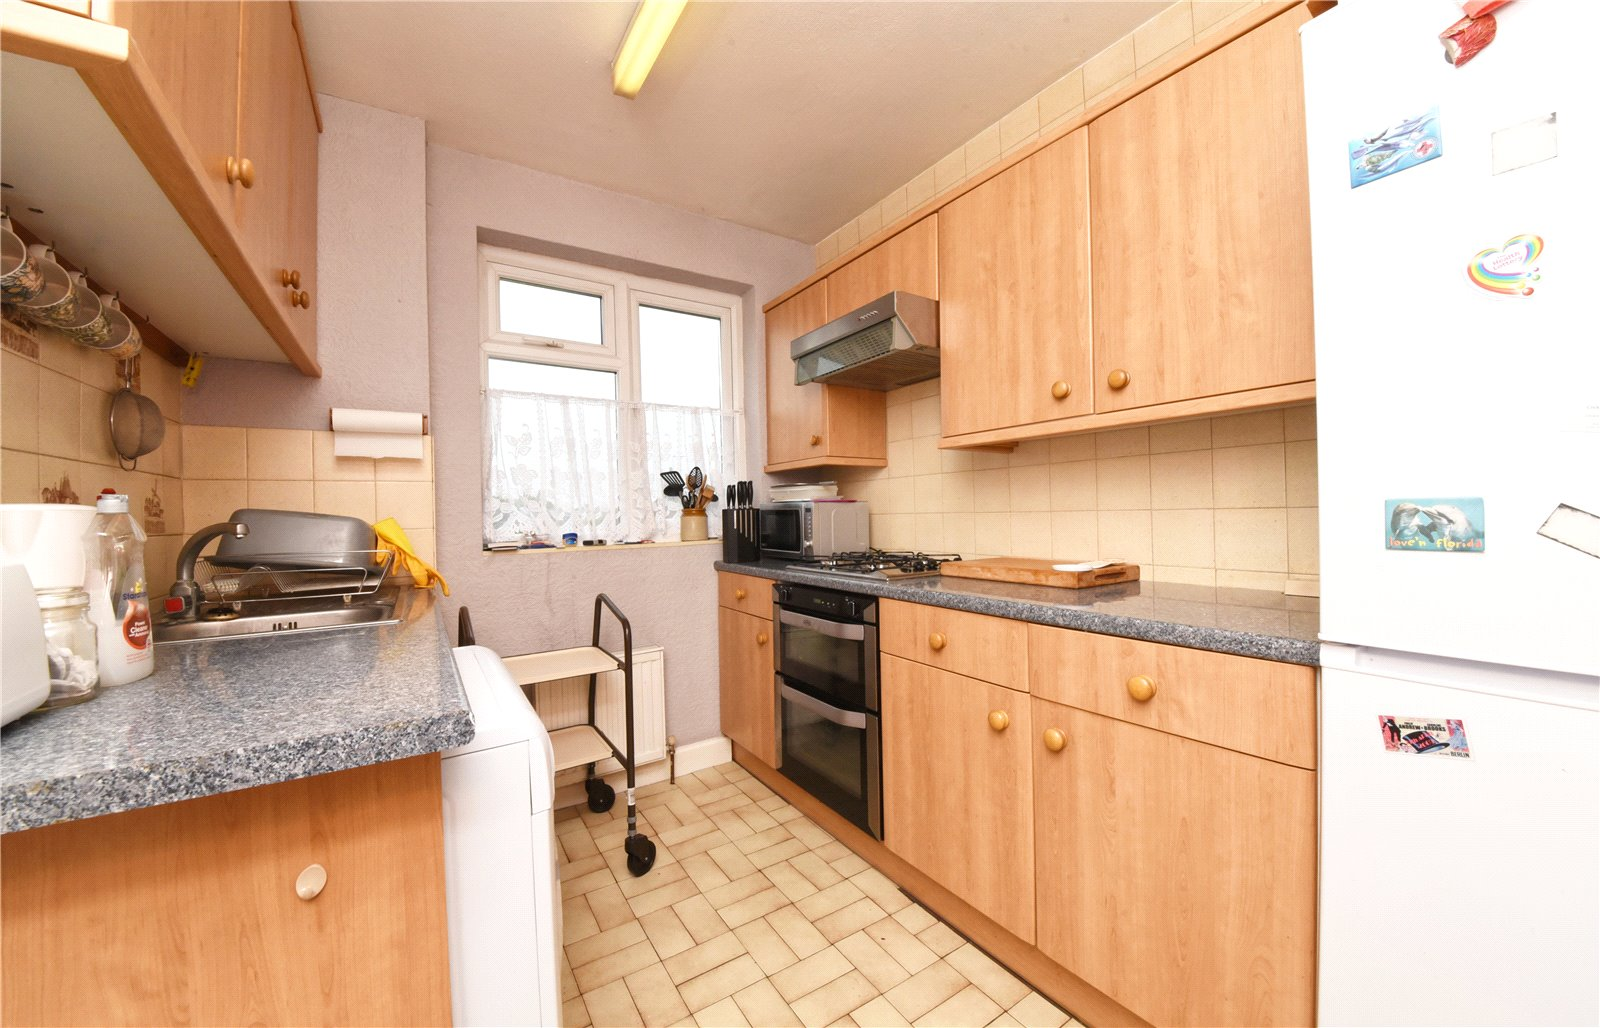 3 bed house for sale in Whetstone, N20 0DG  - Property Image 3